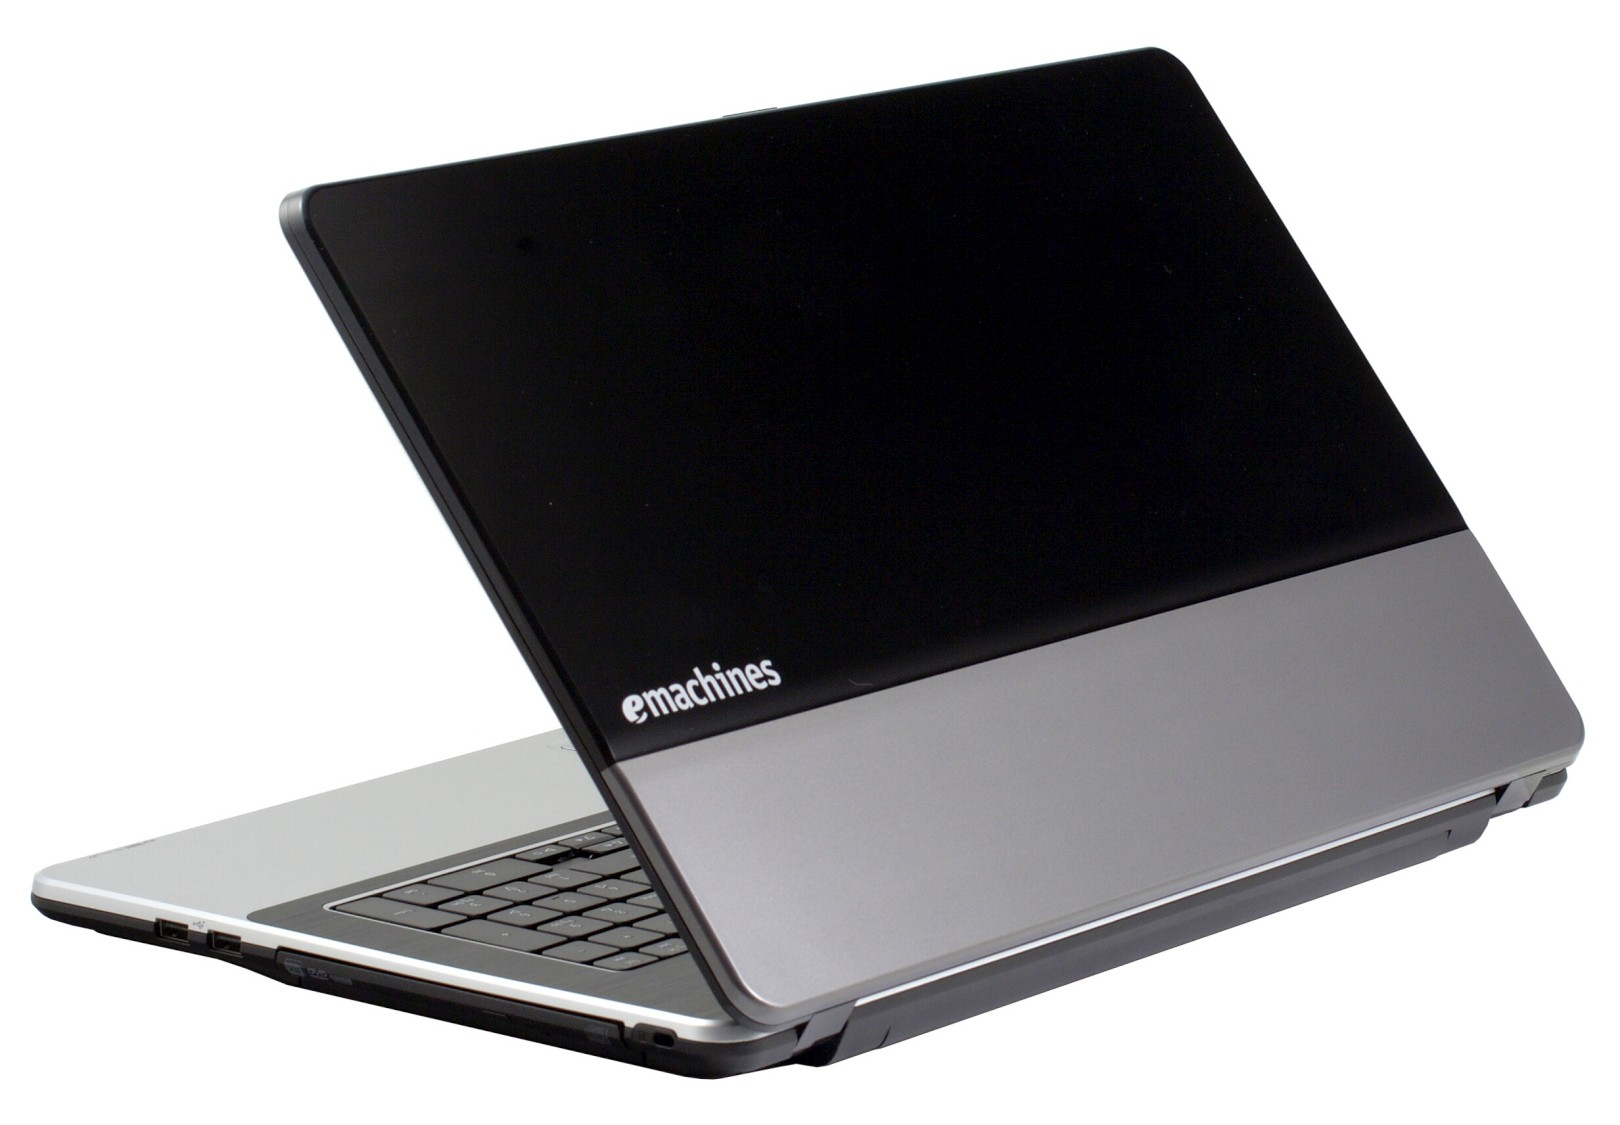 Acer eMachines G640G-N974G50Mnks - Notebookcheck.net External Reviews